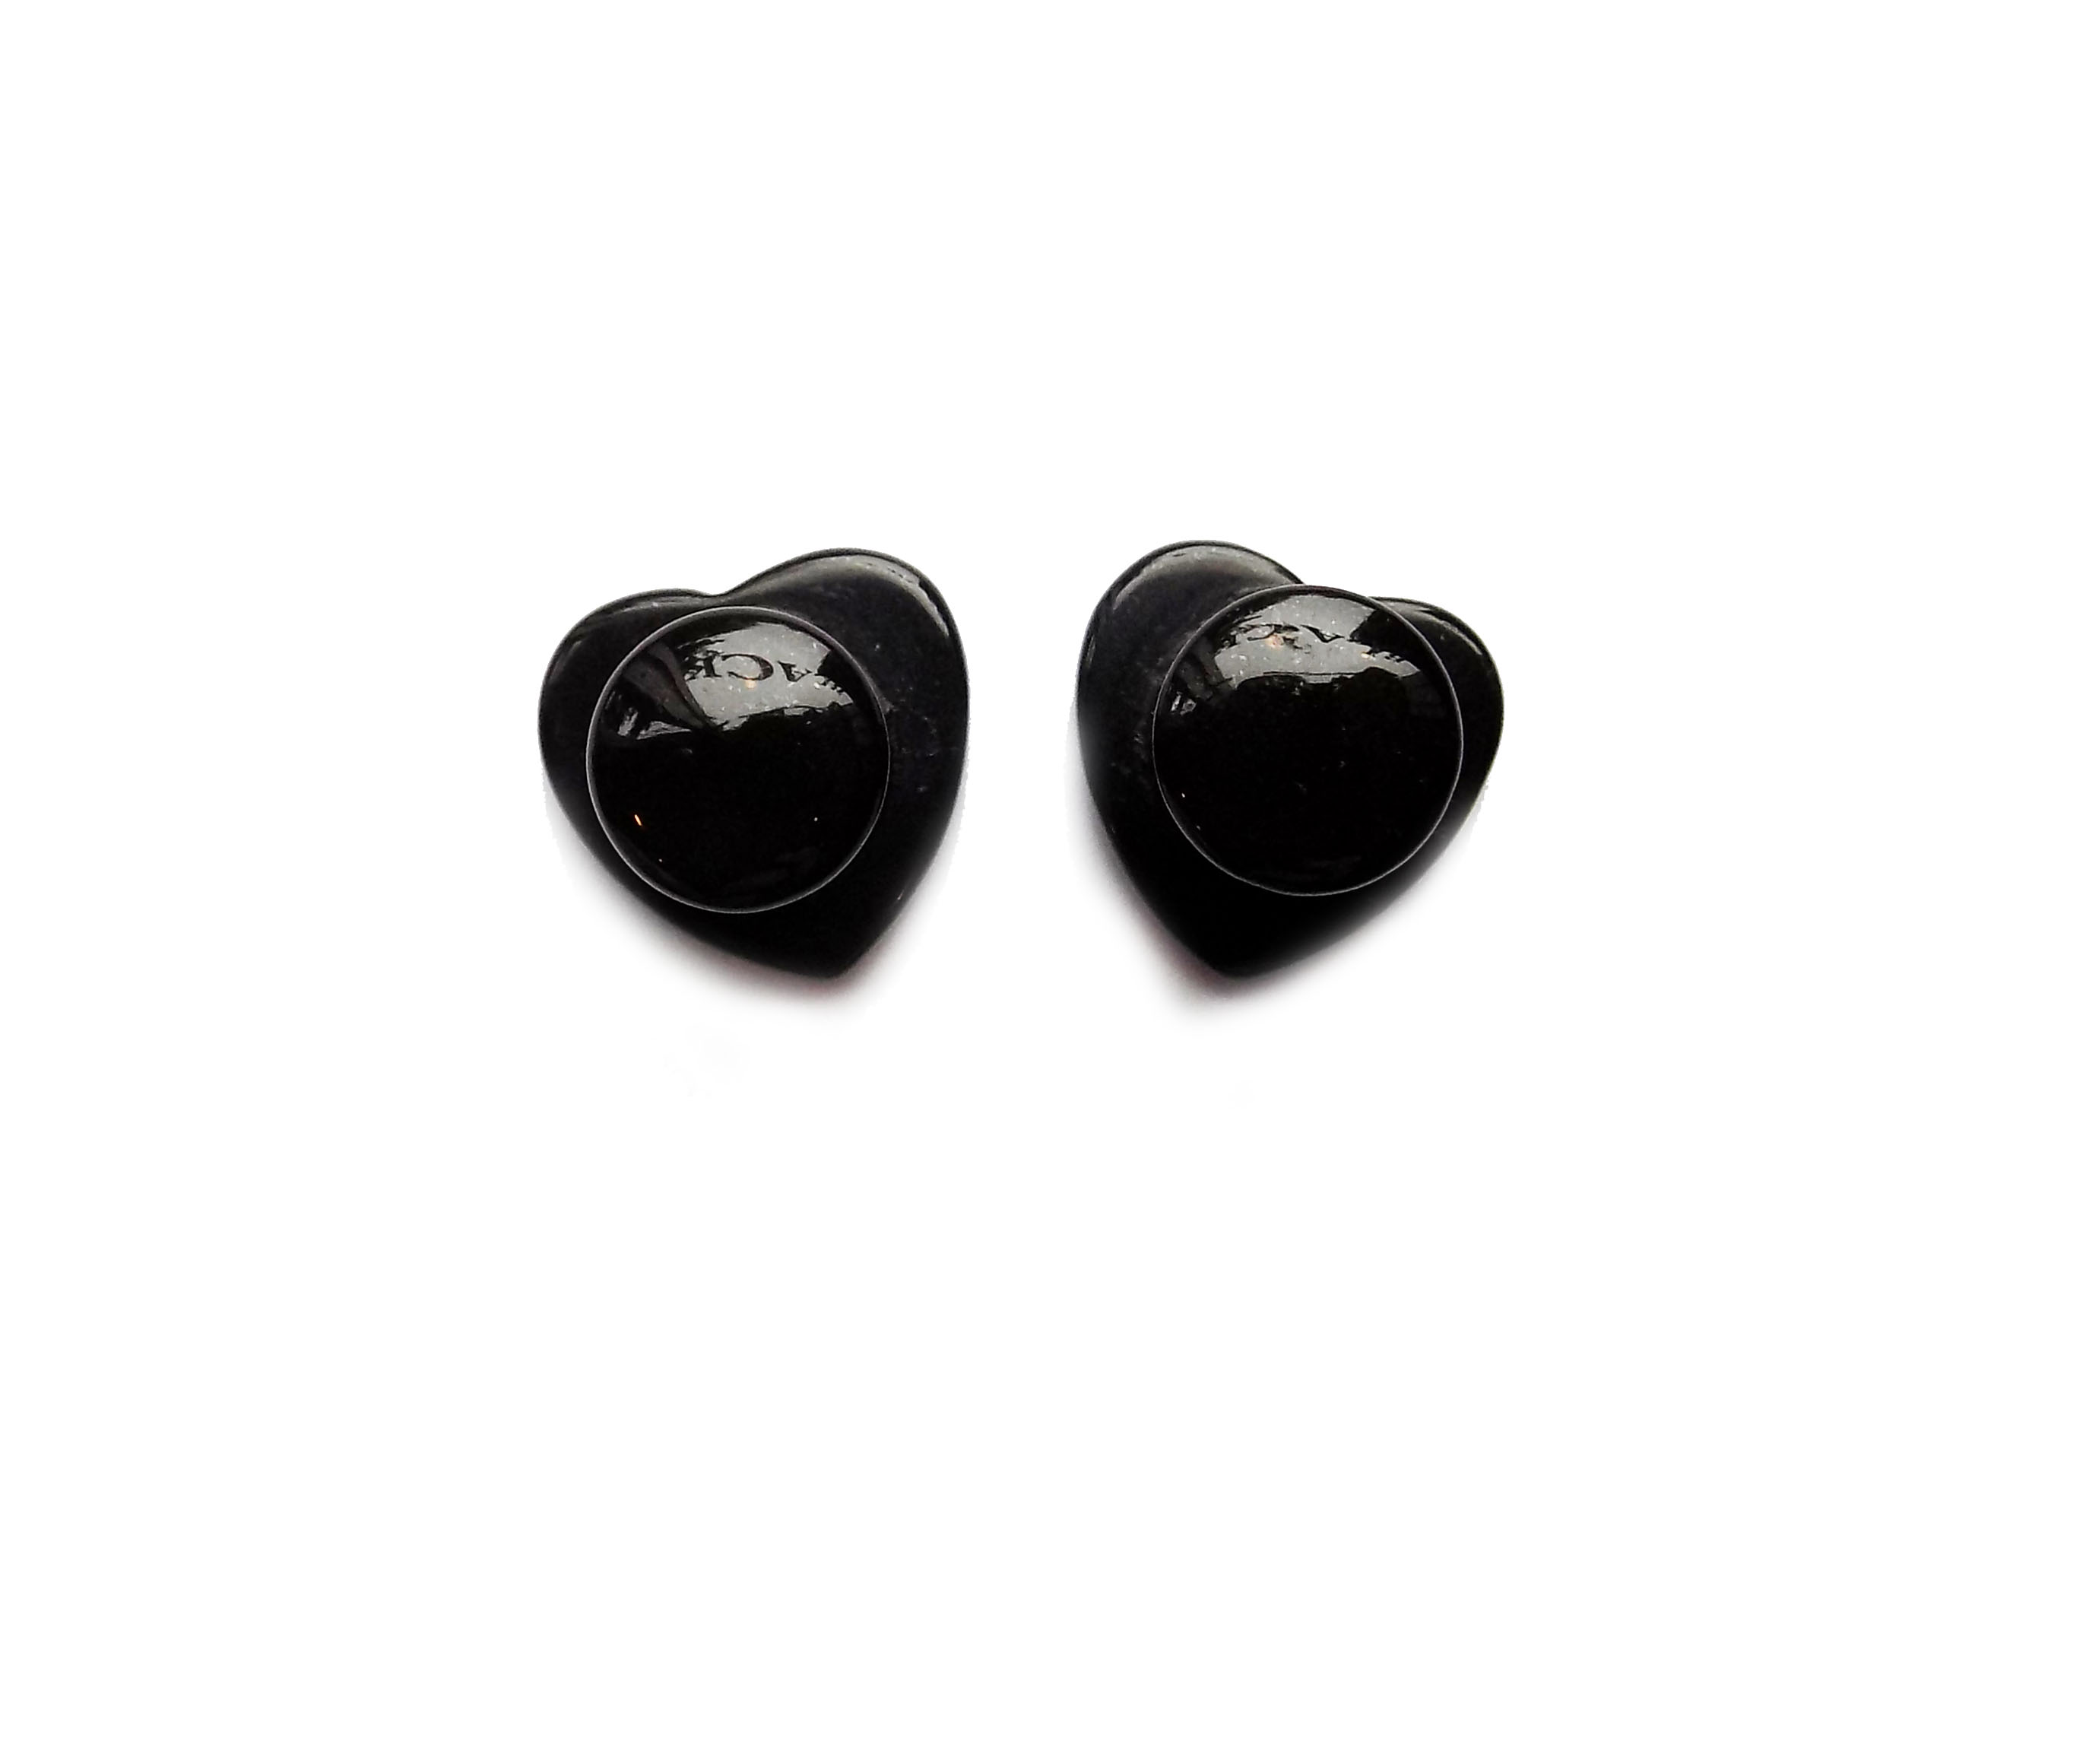 ear steel batman ip com earrings stud plugs walmart